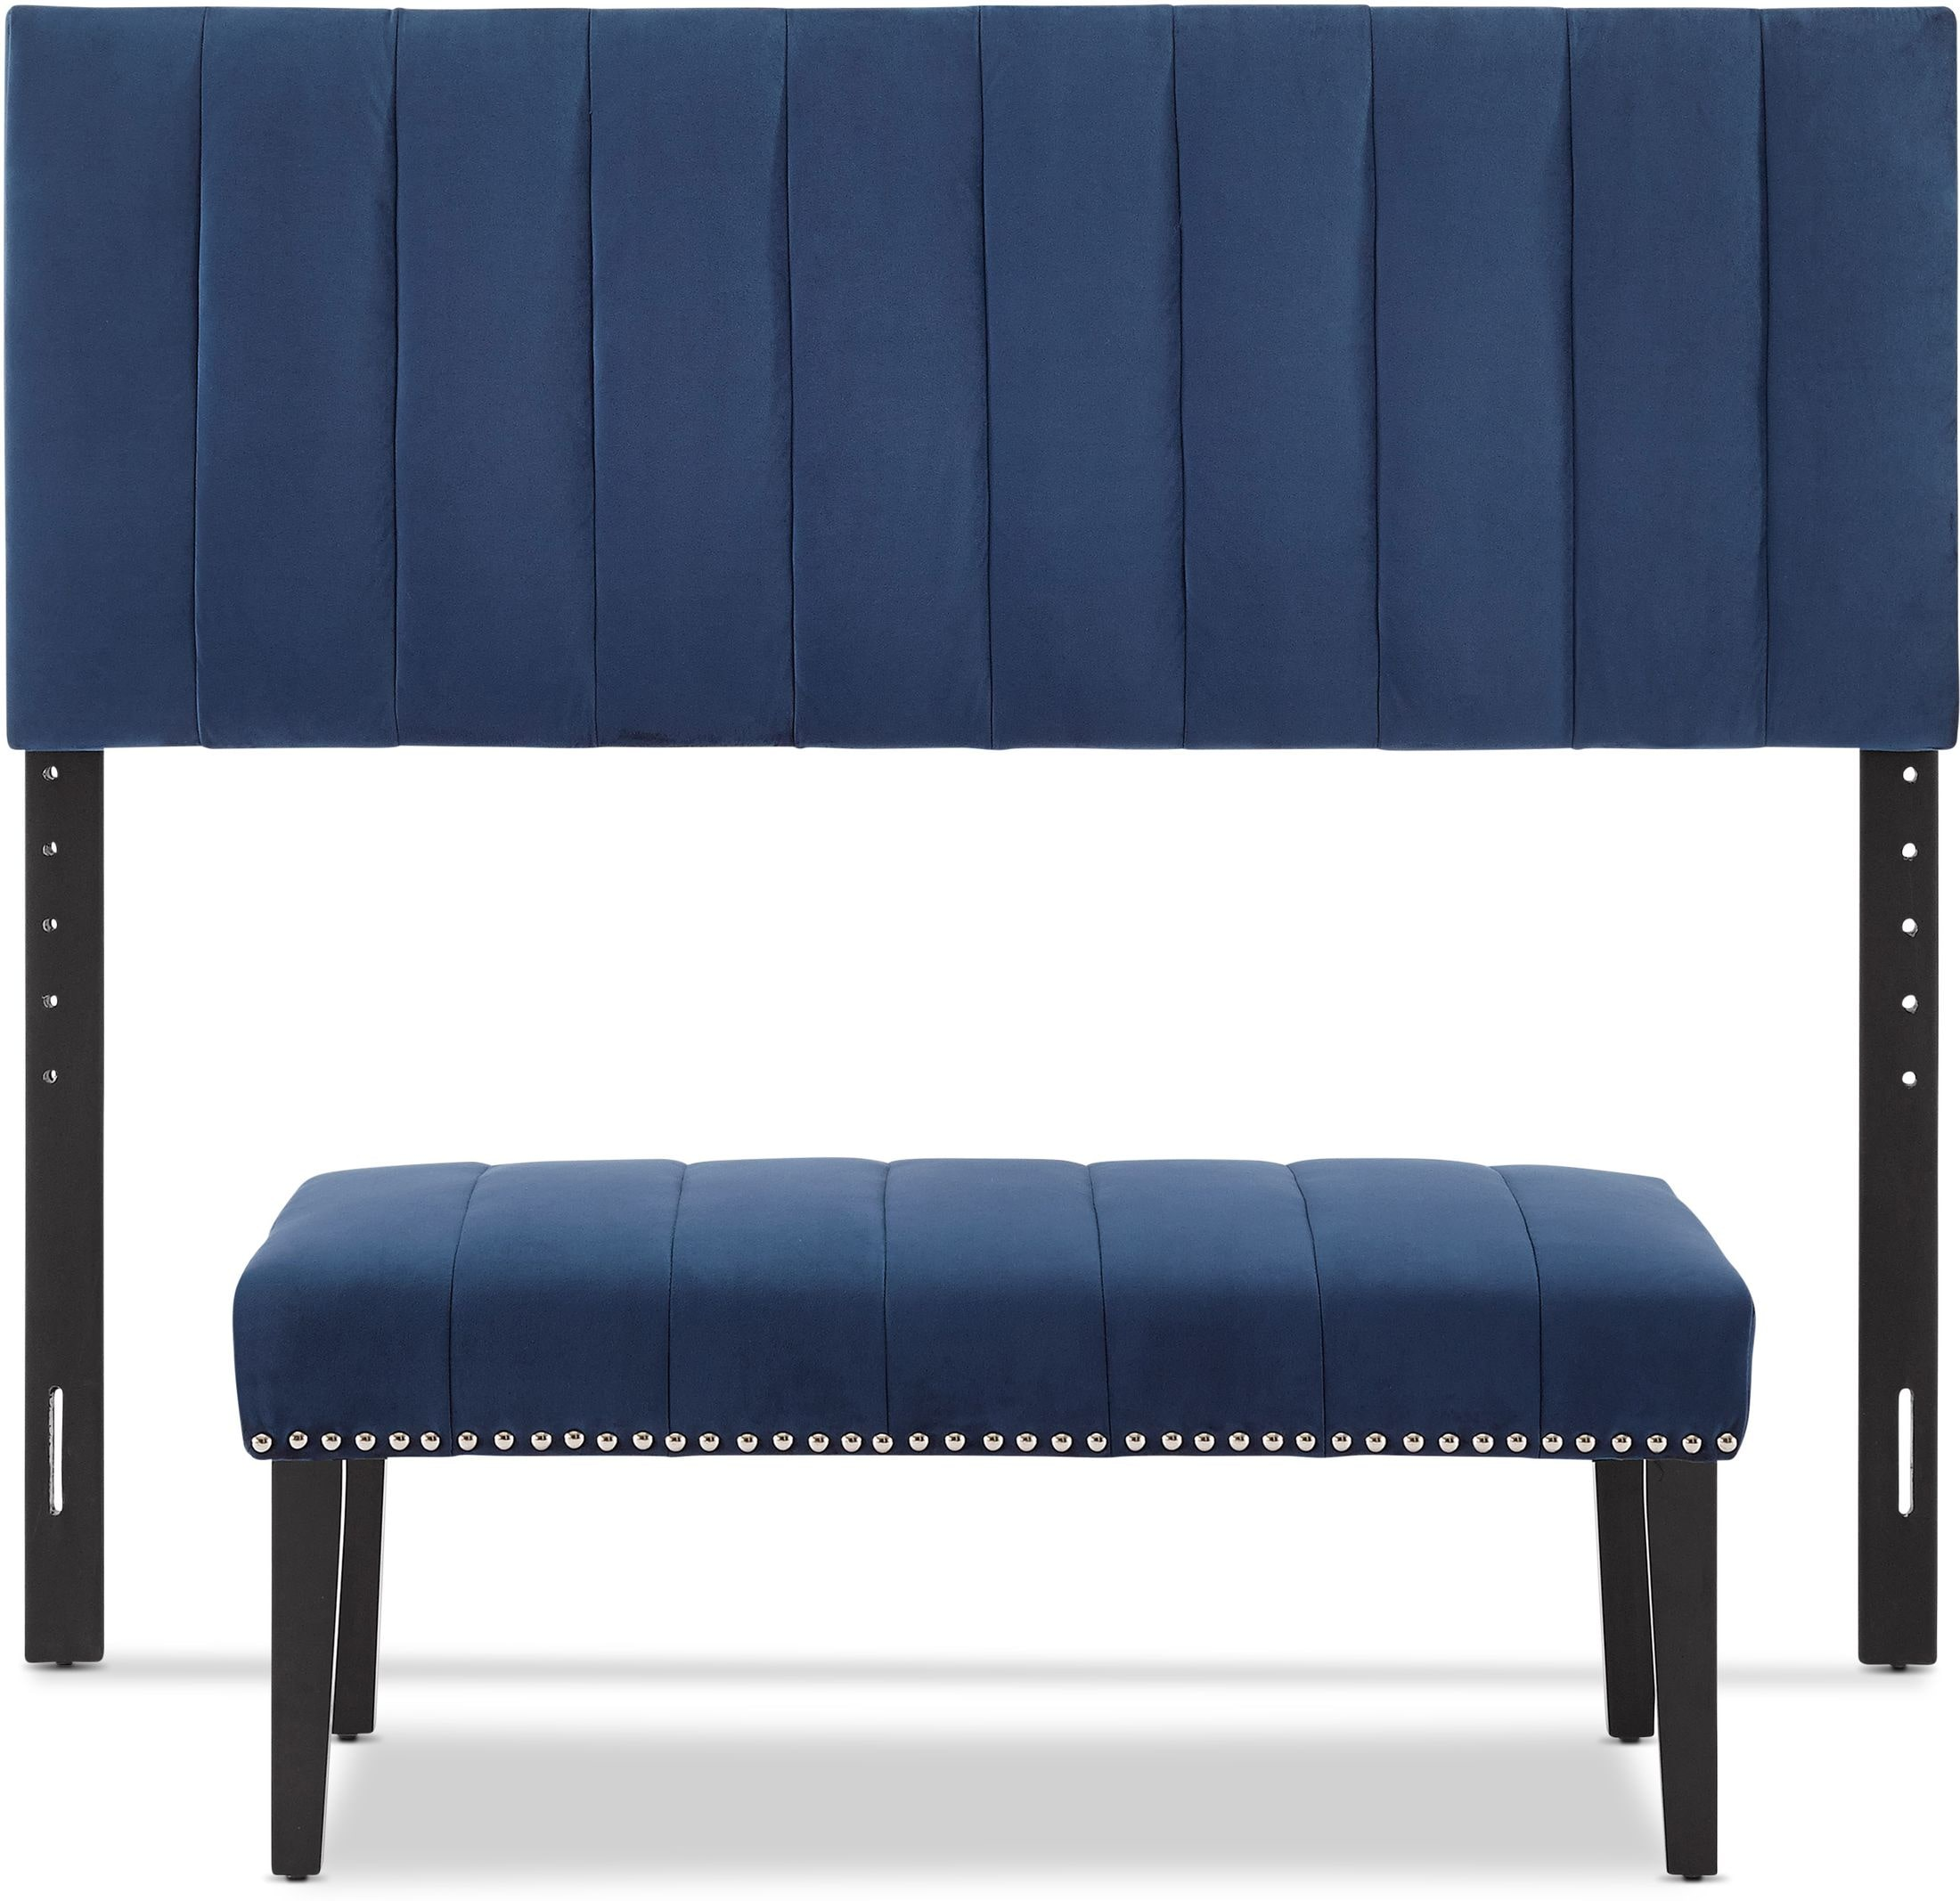 Bedroom Furniture - Stella Queen Upholstered Headboard and Bench Set